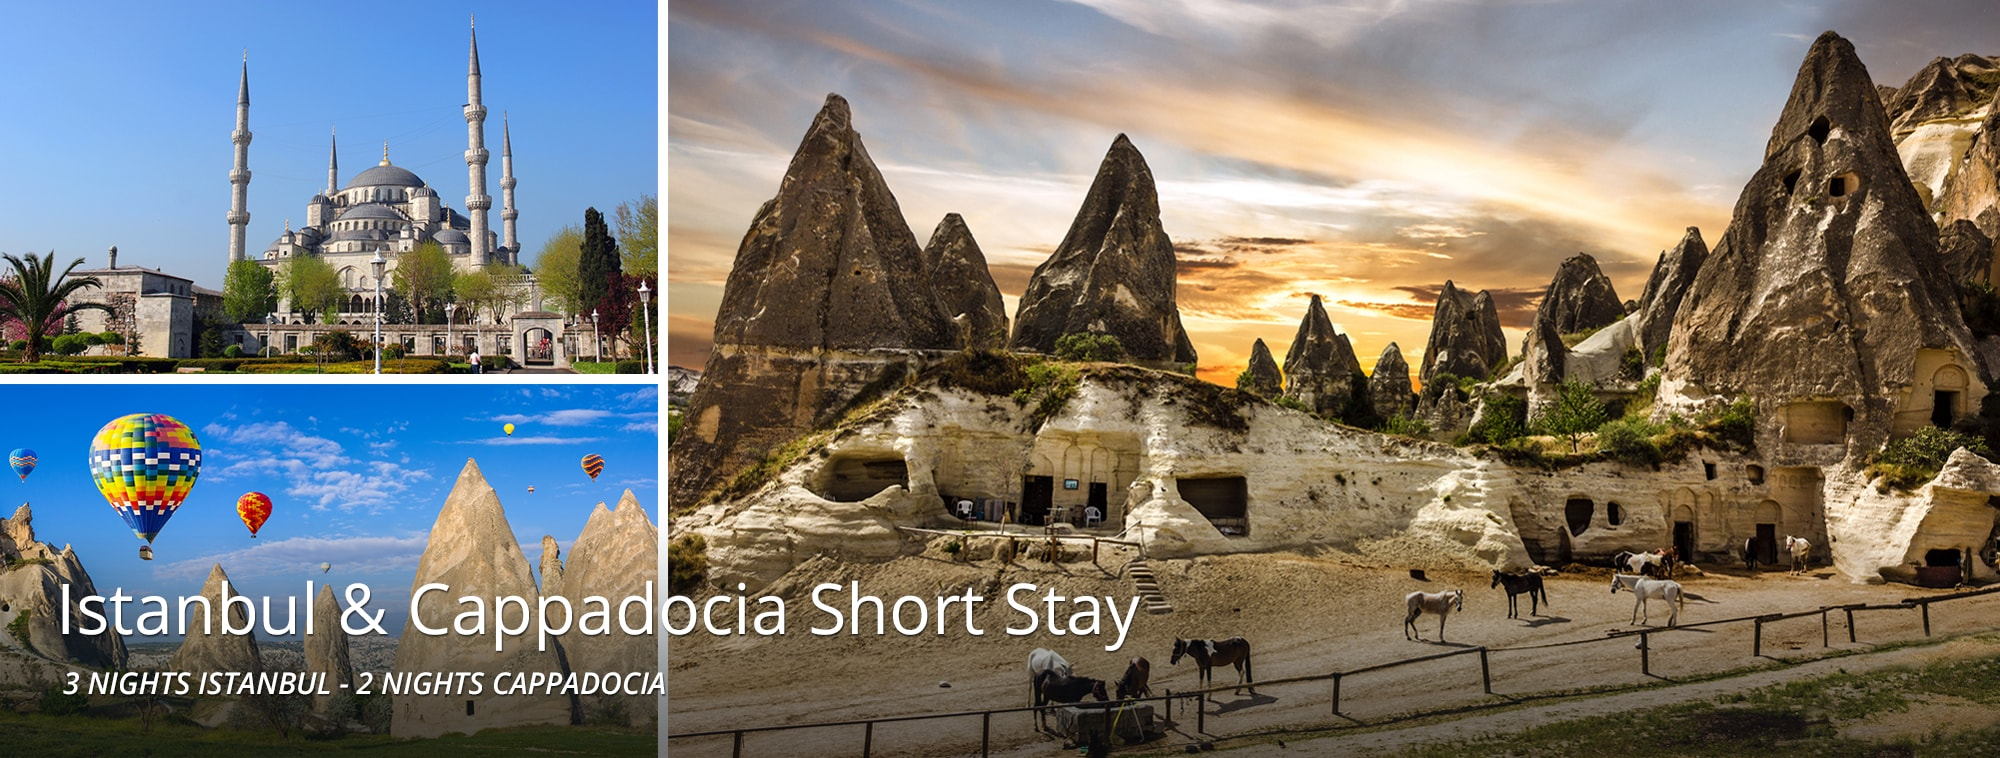 Istanbul & Cappadocia Short Stay Top Banner